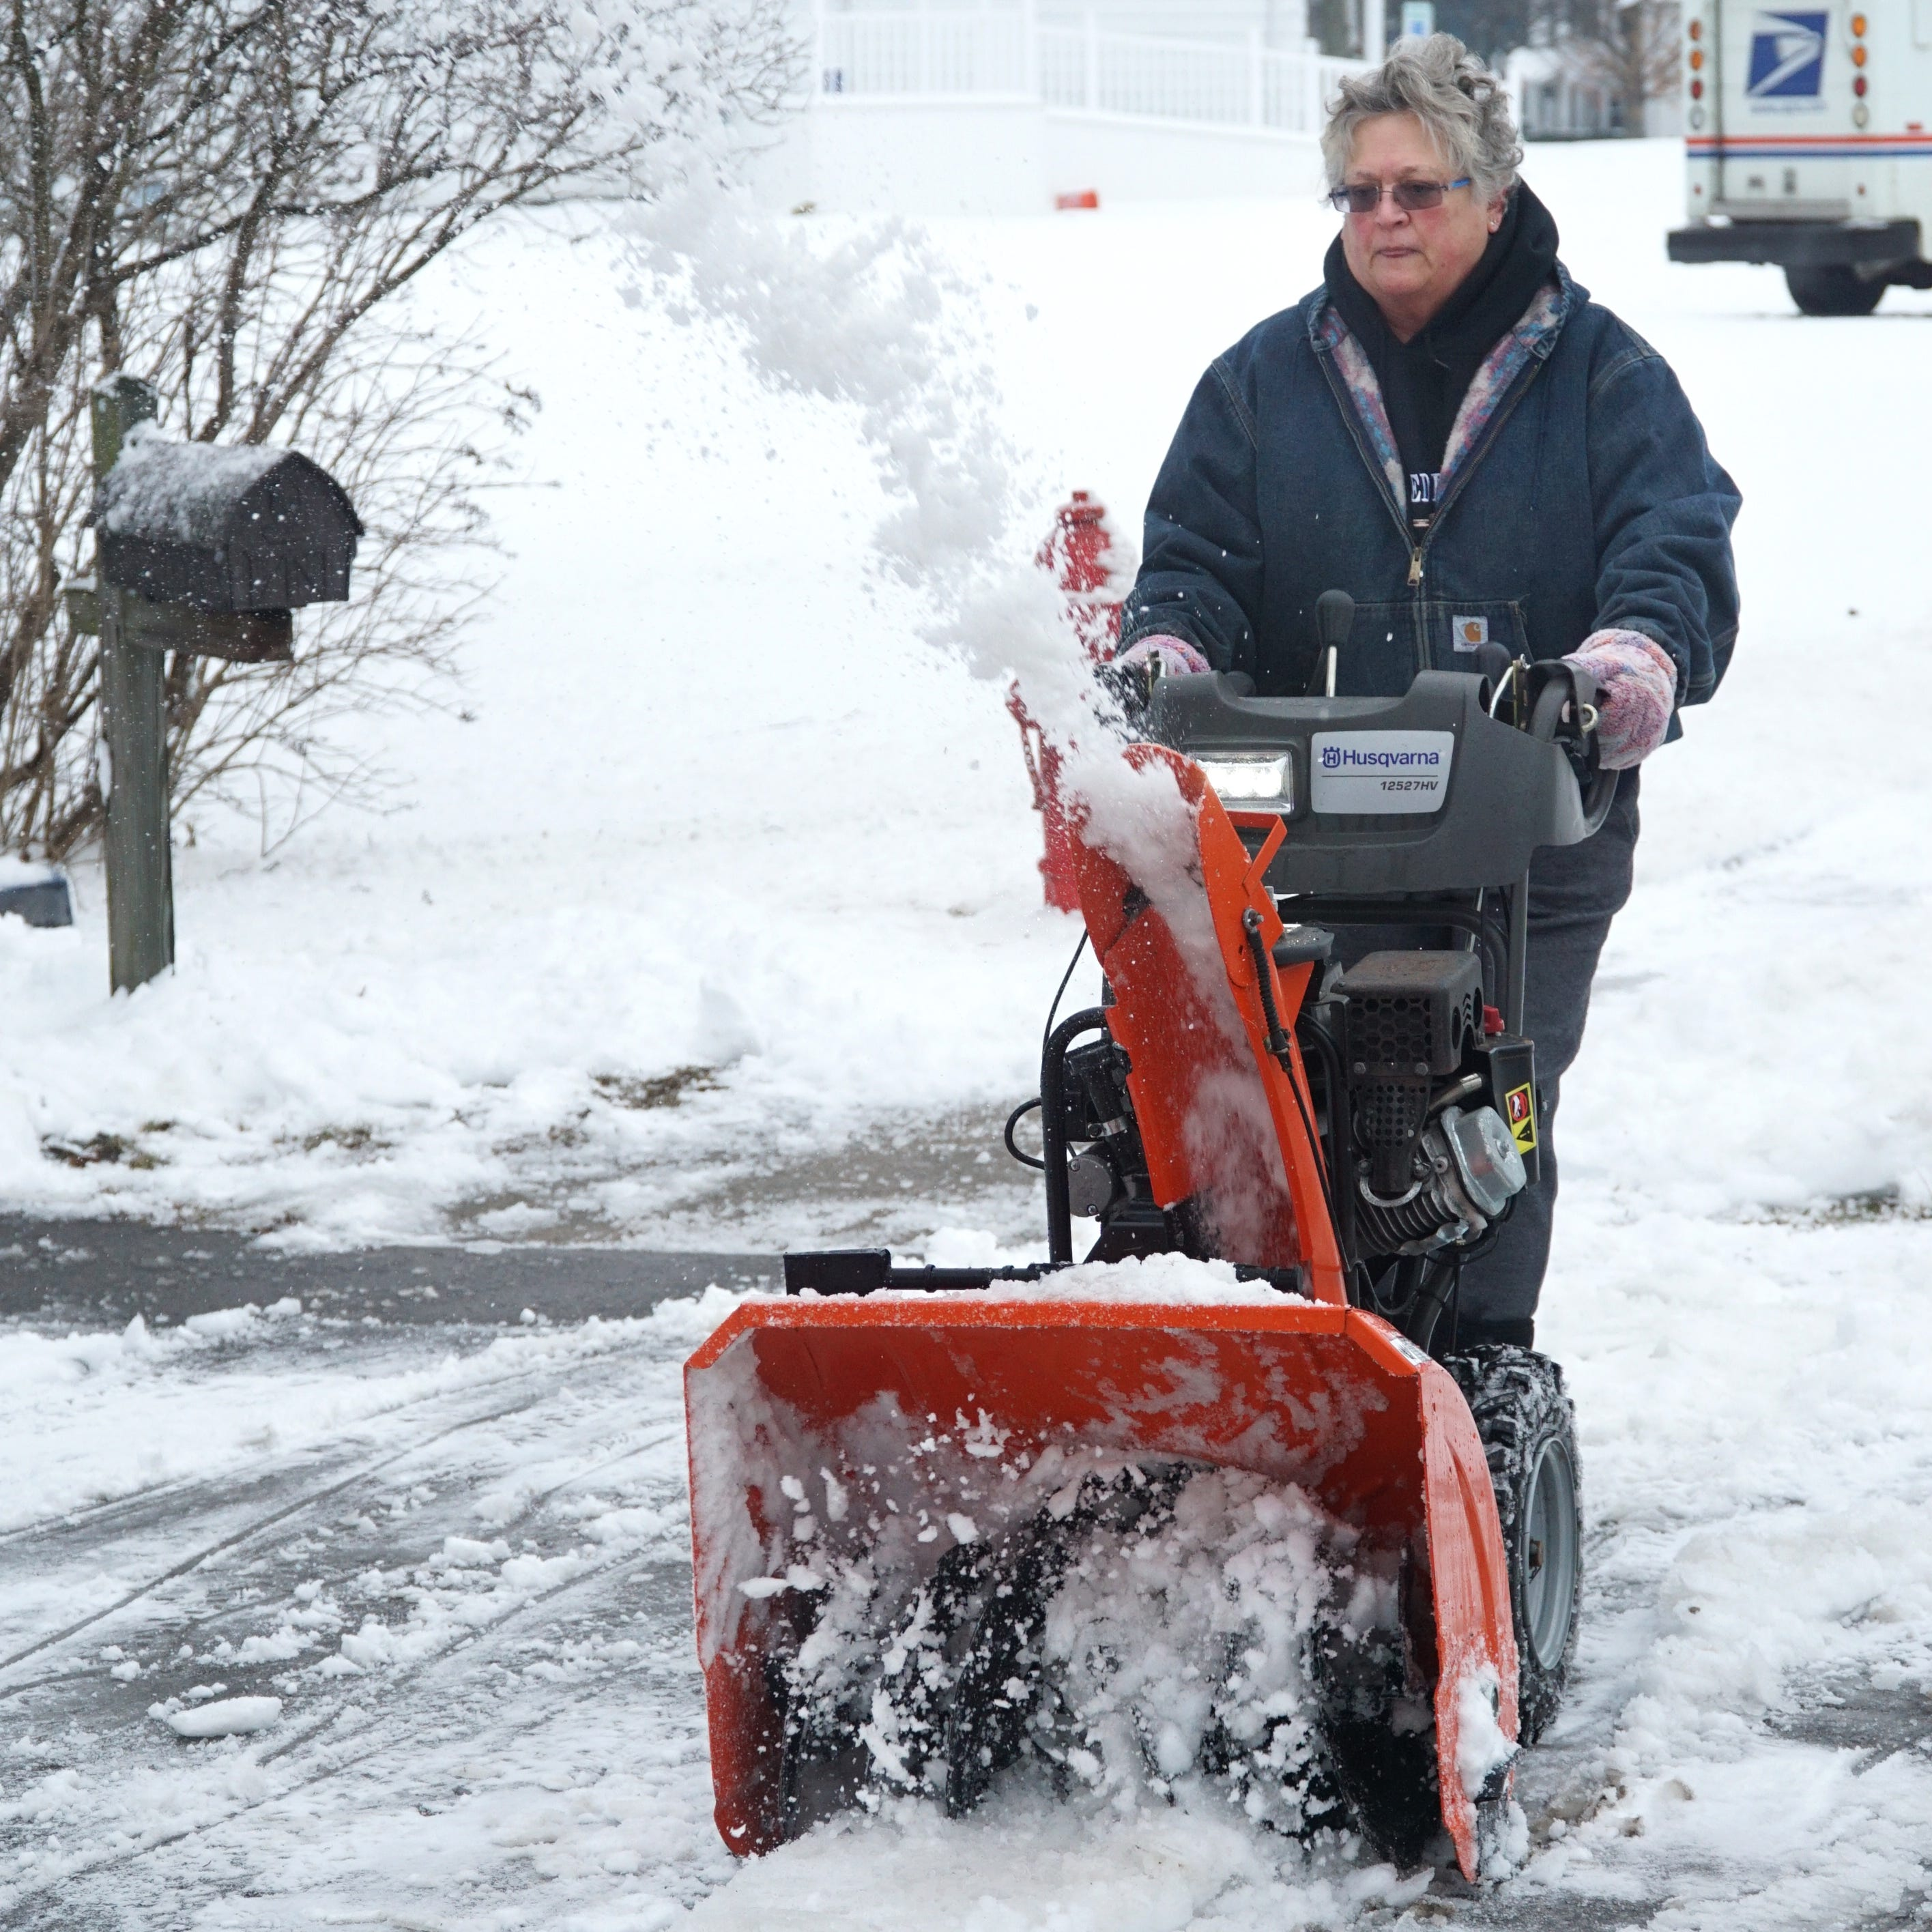 As cold weather bears down, area schools use up all their snow days